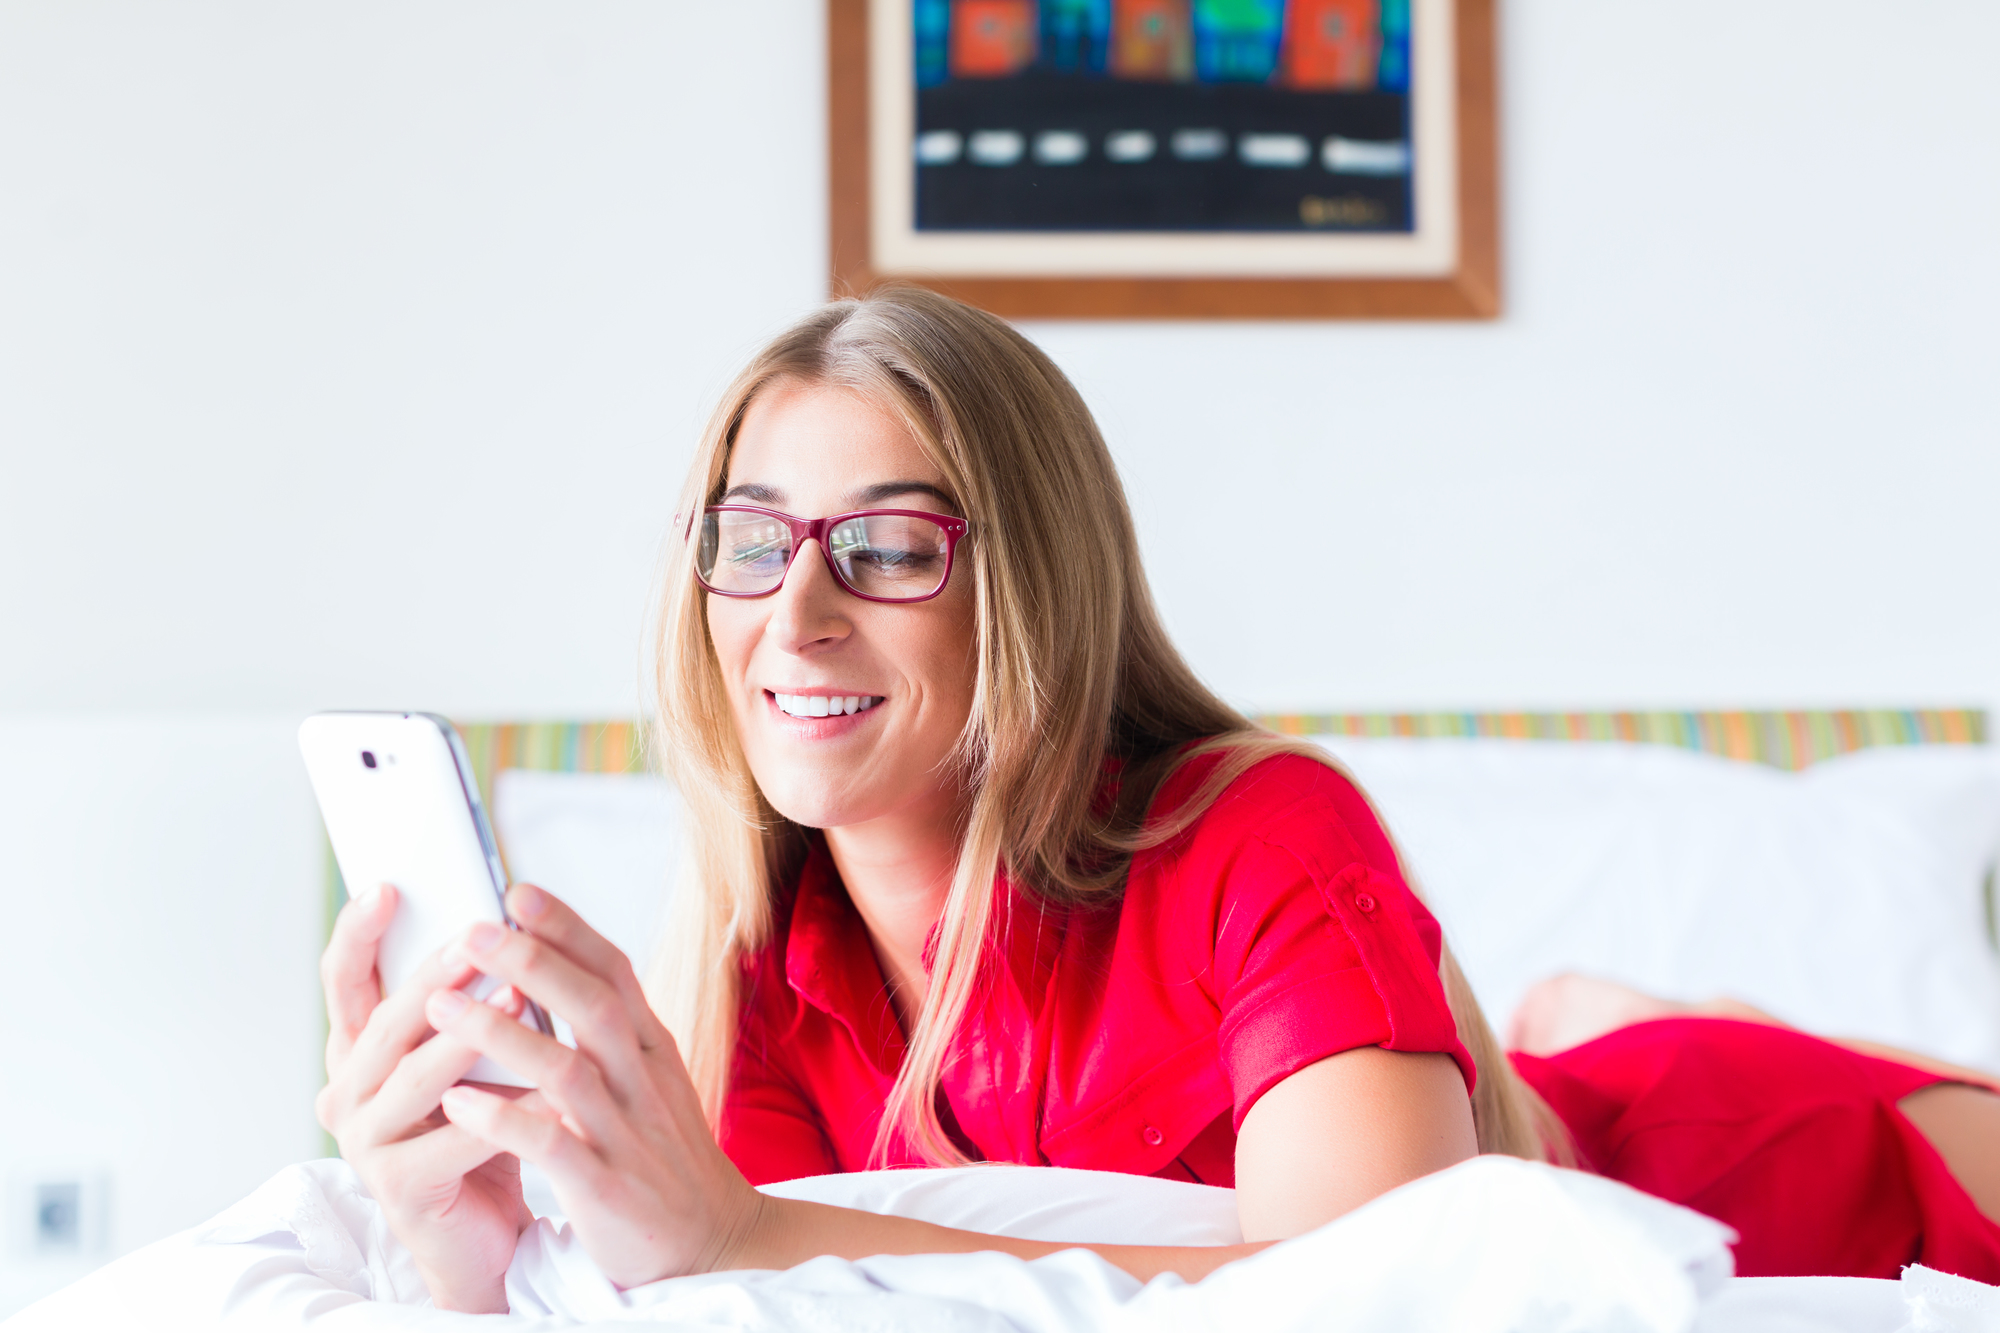 Woman reading Mails on smartphone on bed